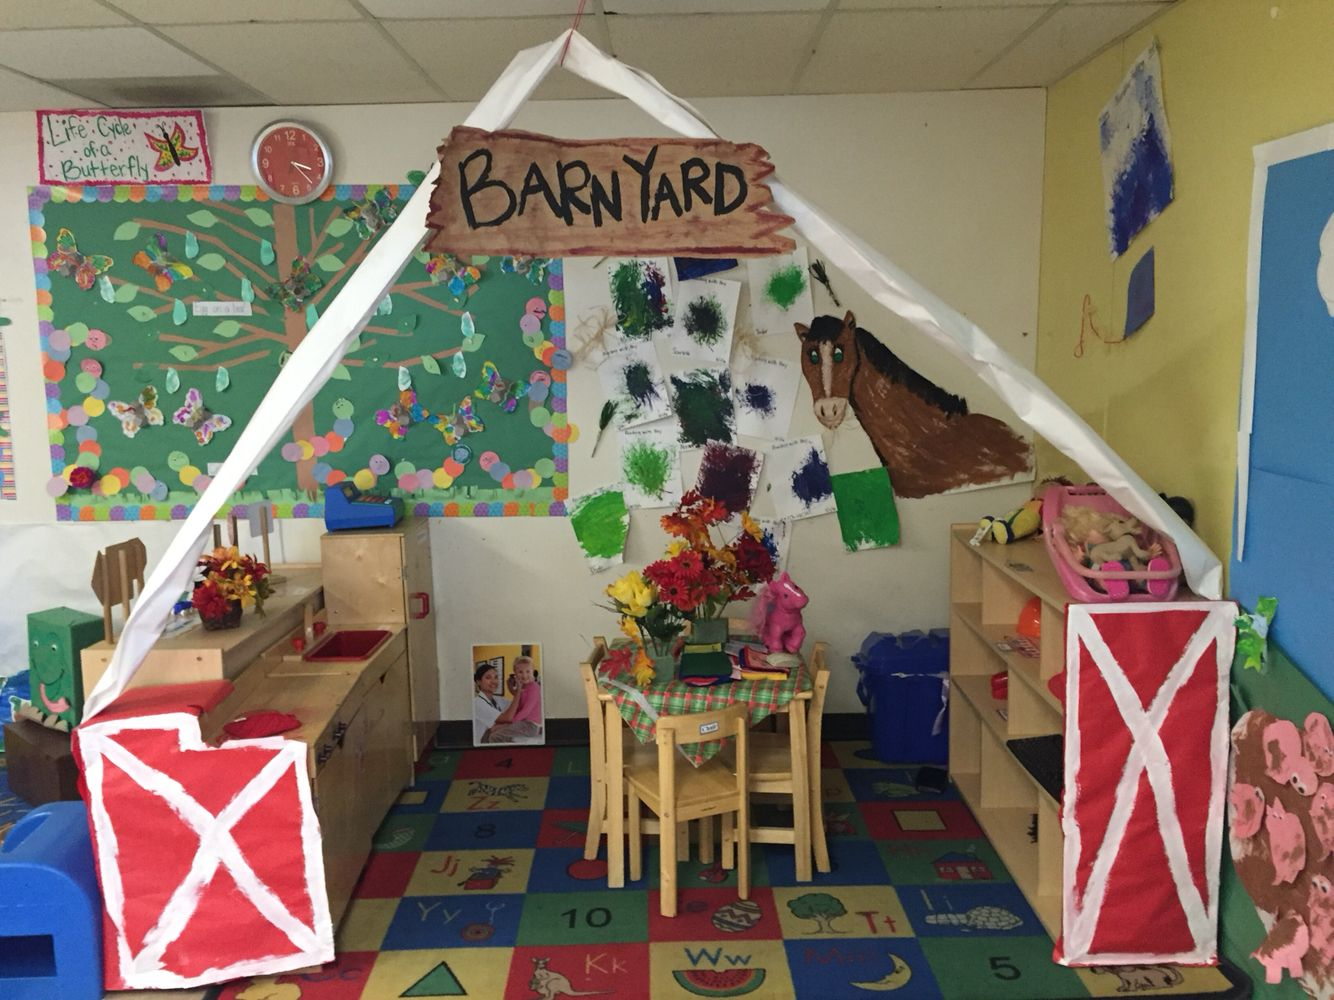 Barn Yard Dramatic Play Area